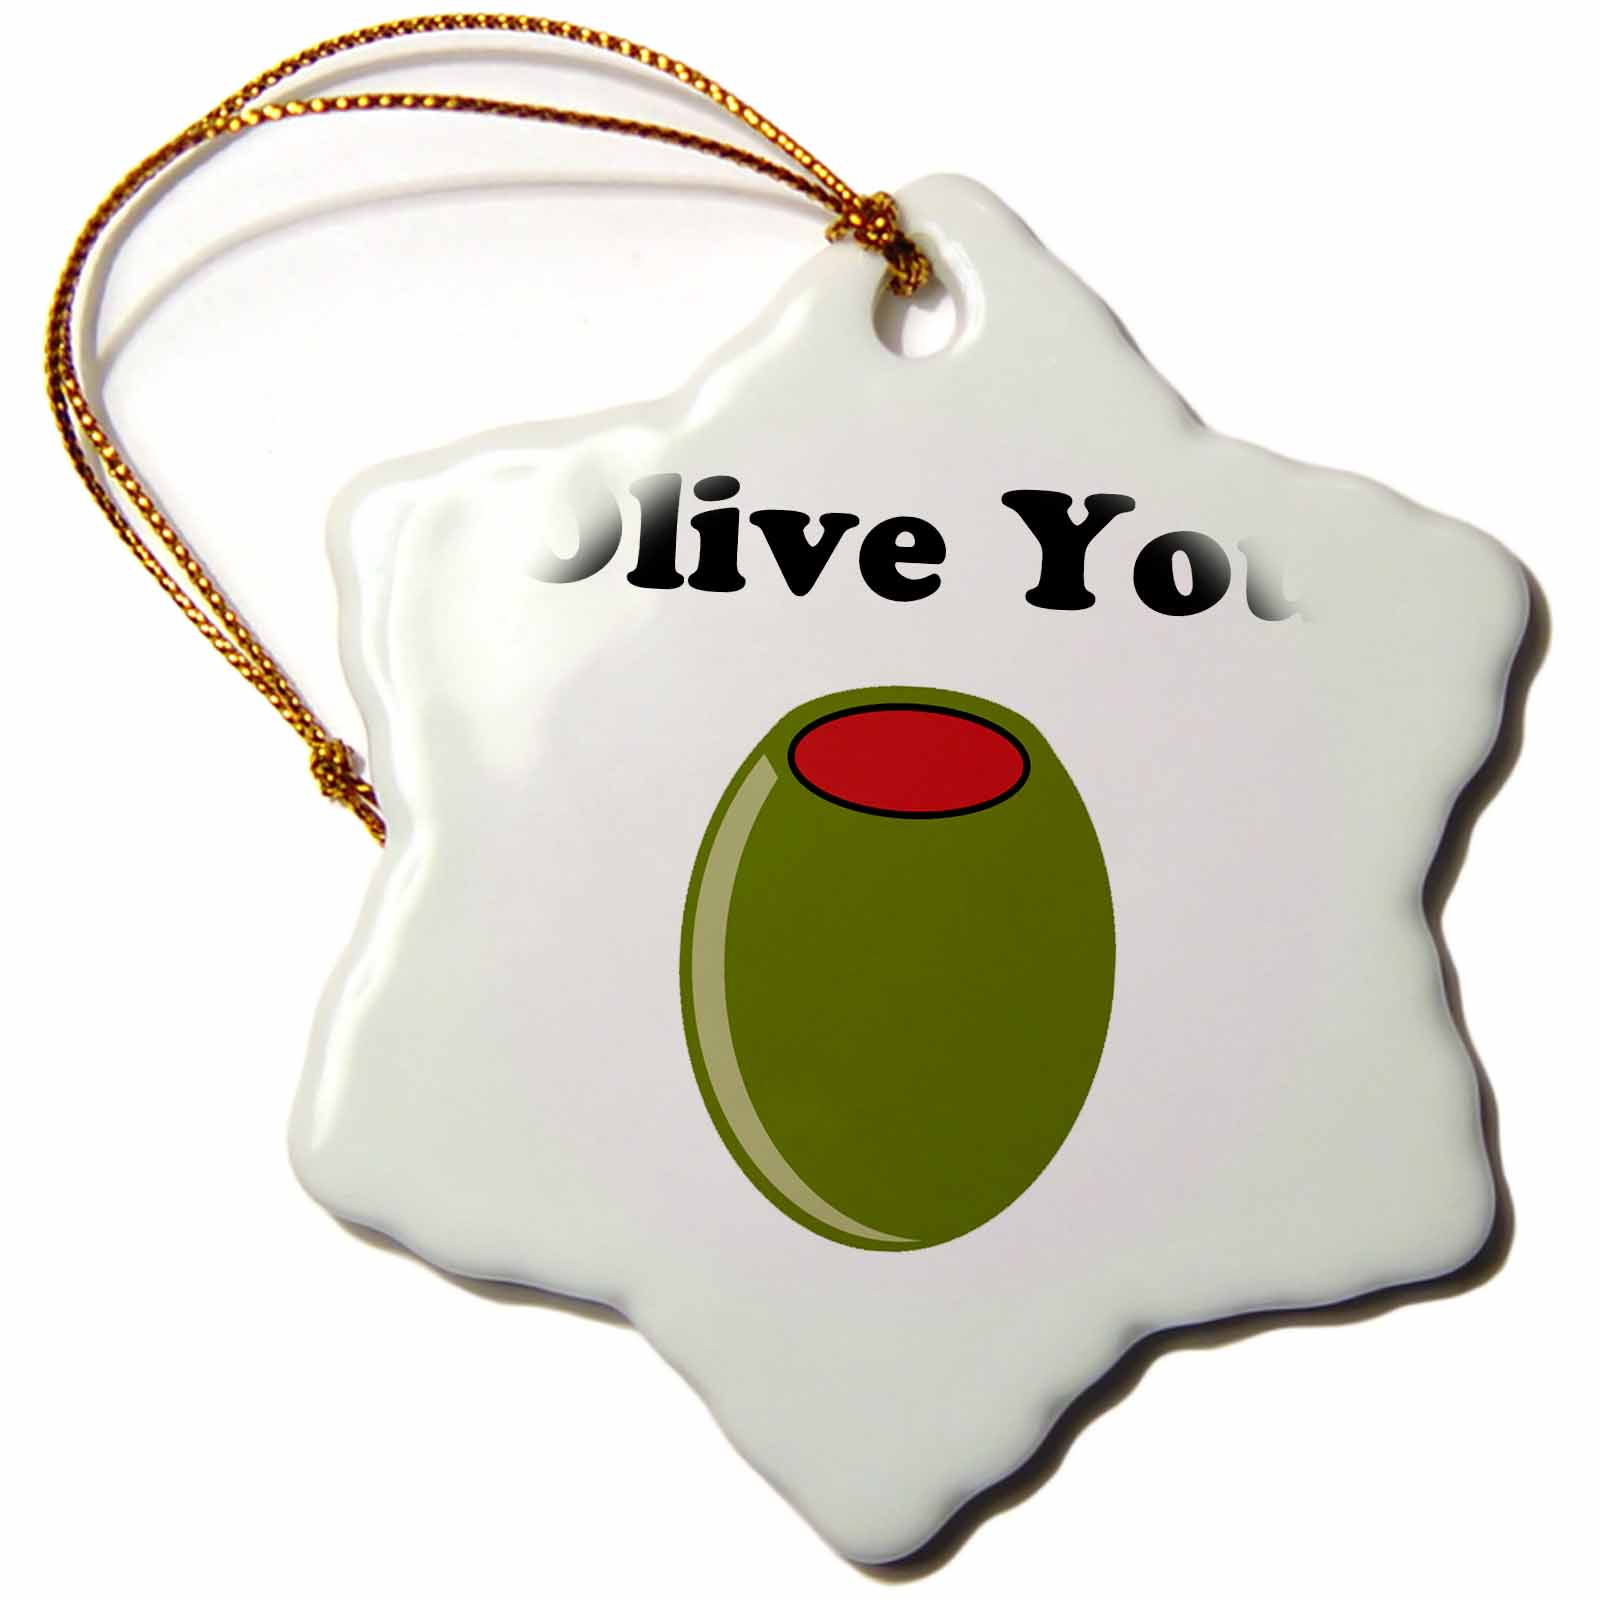 3dRose Olive you., Snowflake Ornament, Porcelain, 3-inch